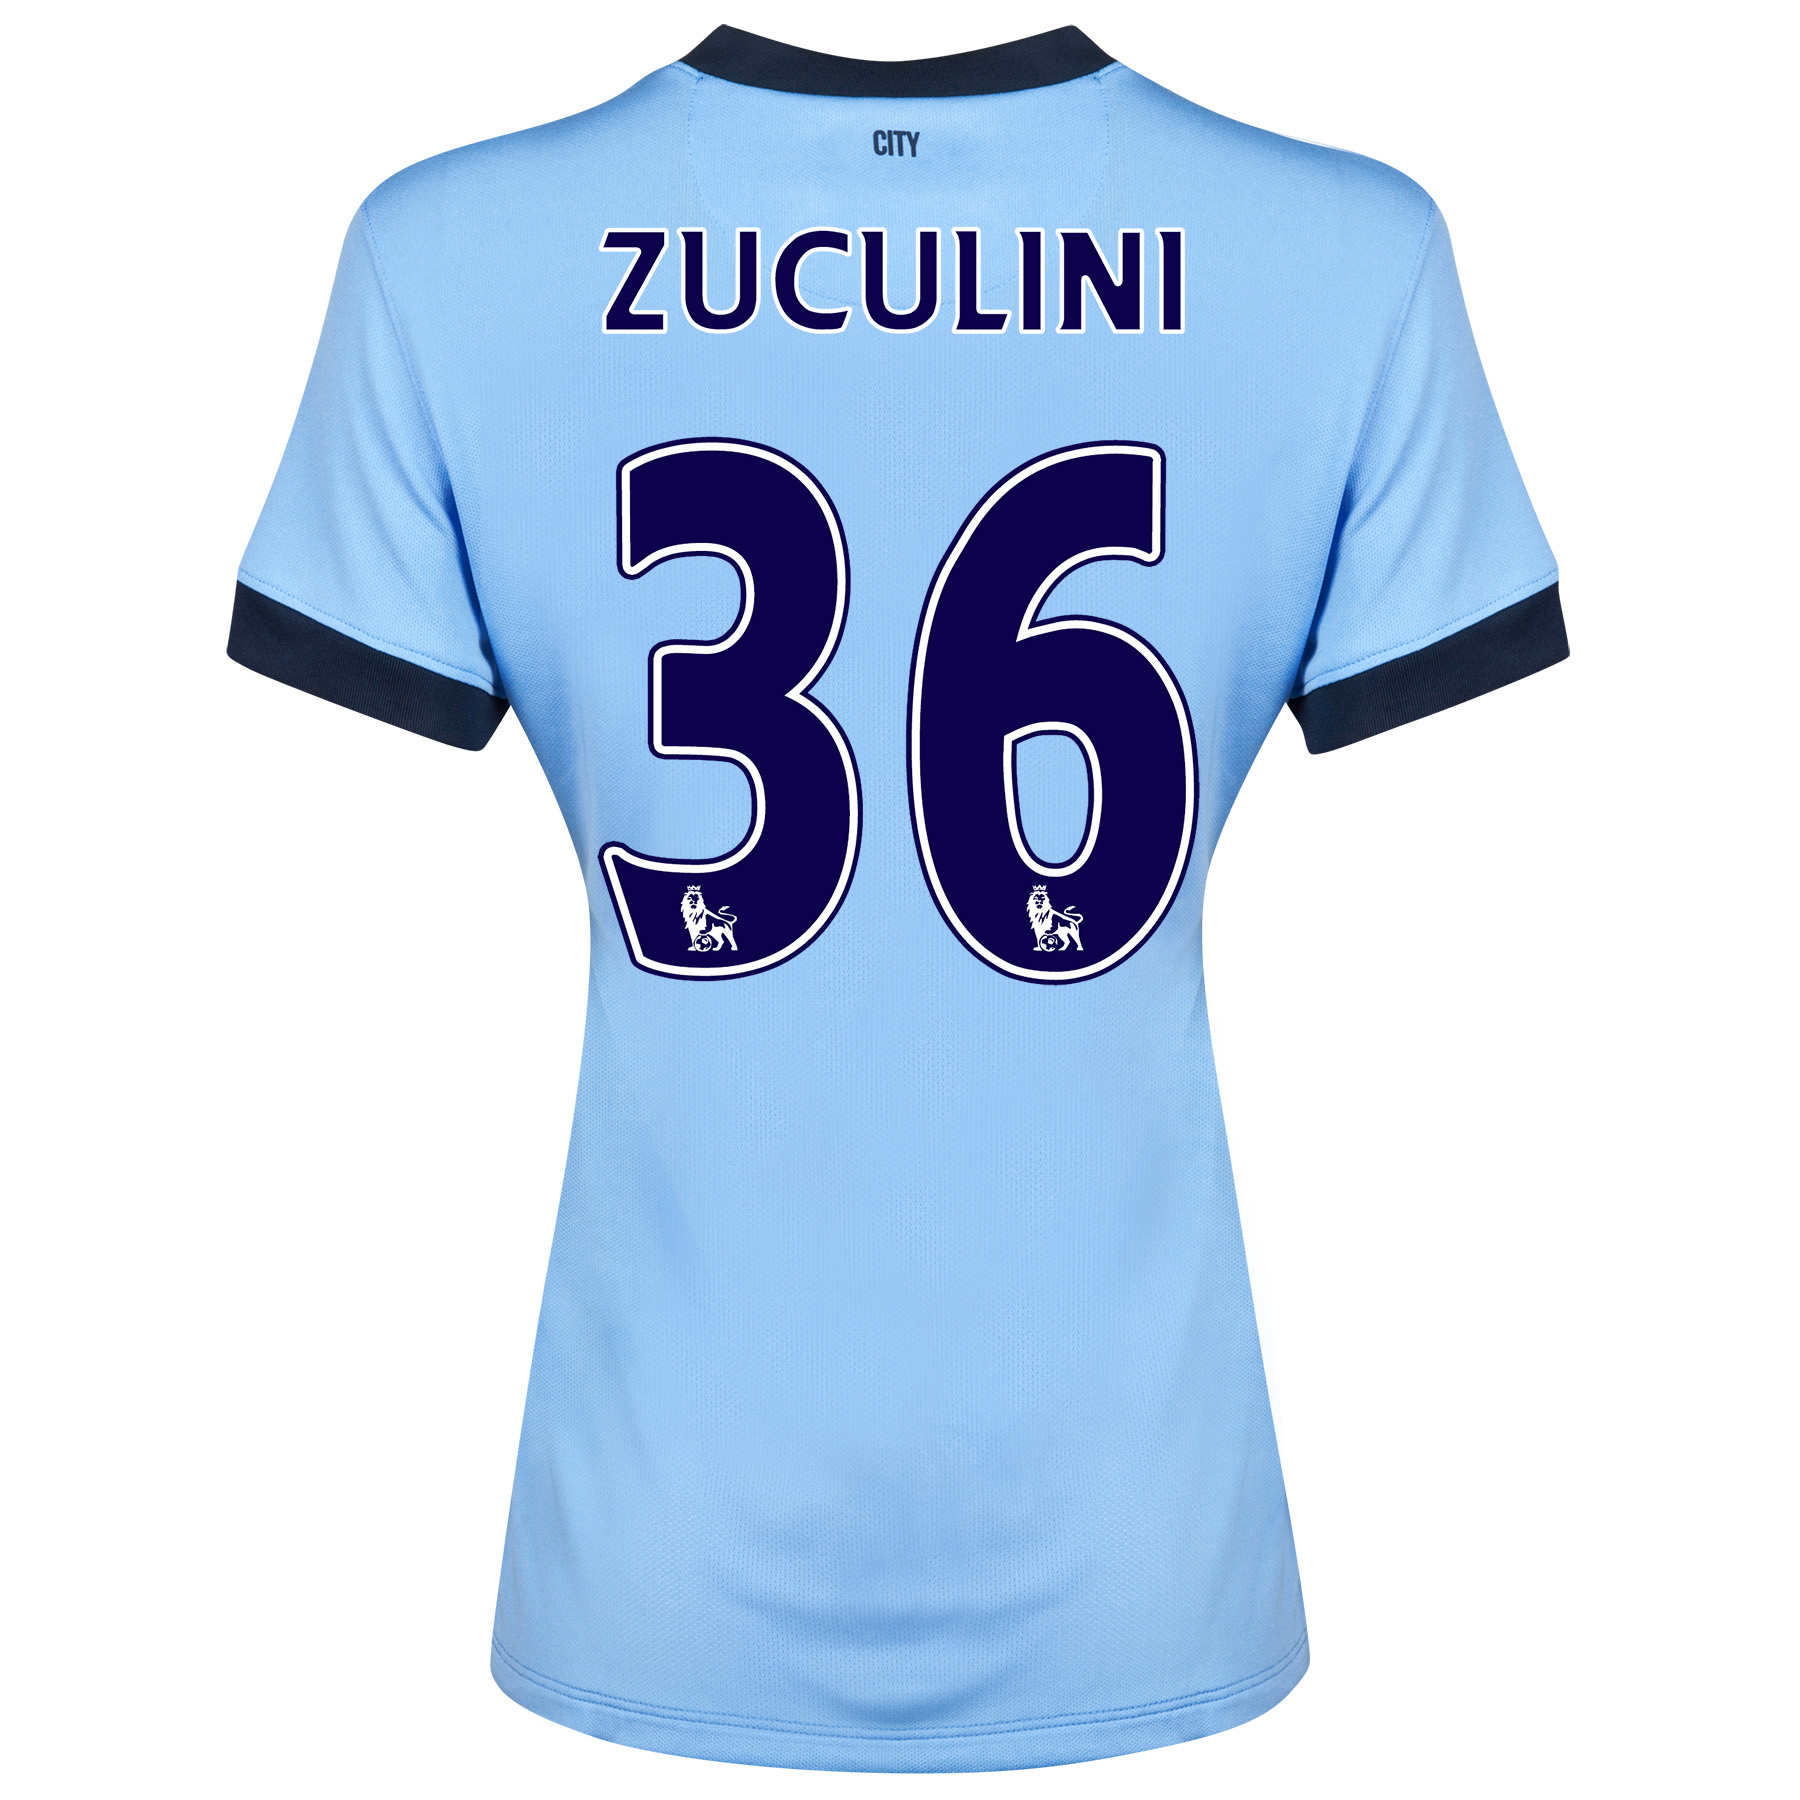 Manchester City Home Shirt 2014/15 - Womens Sky Blue with Zuculini 36 printing